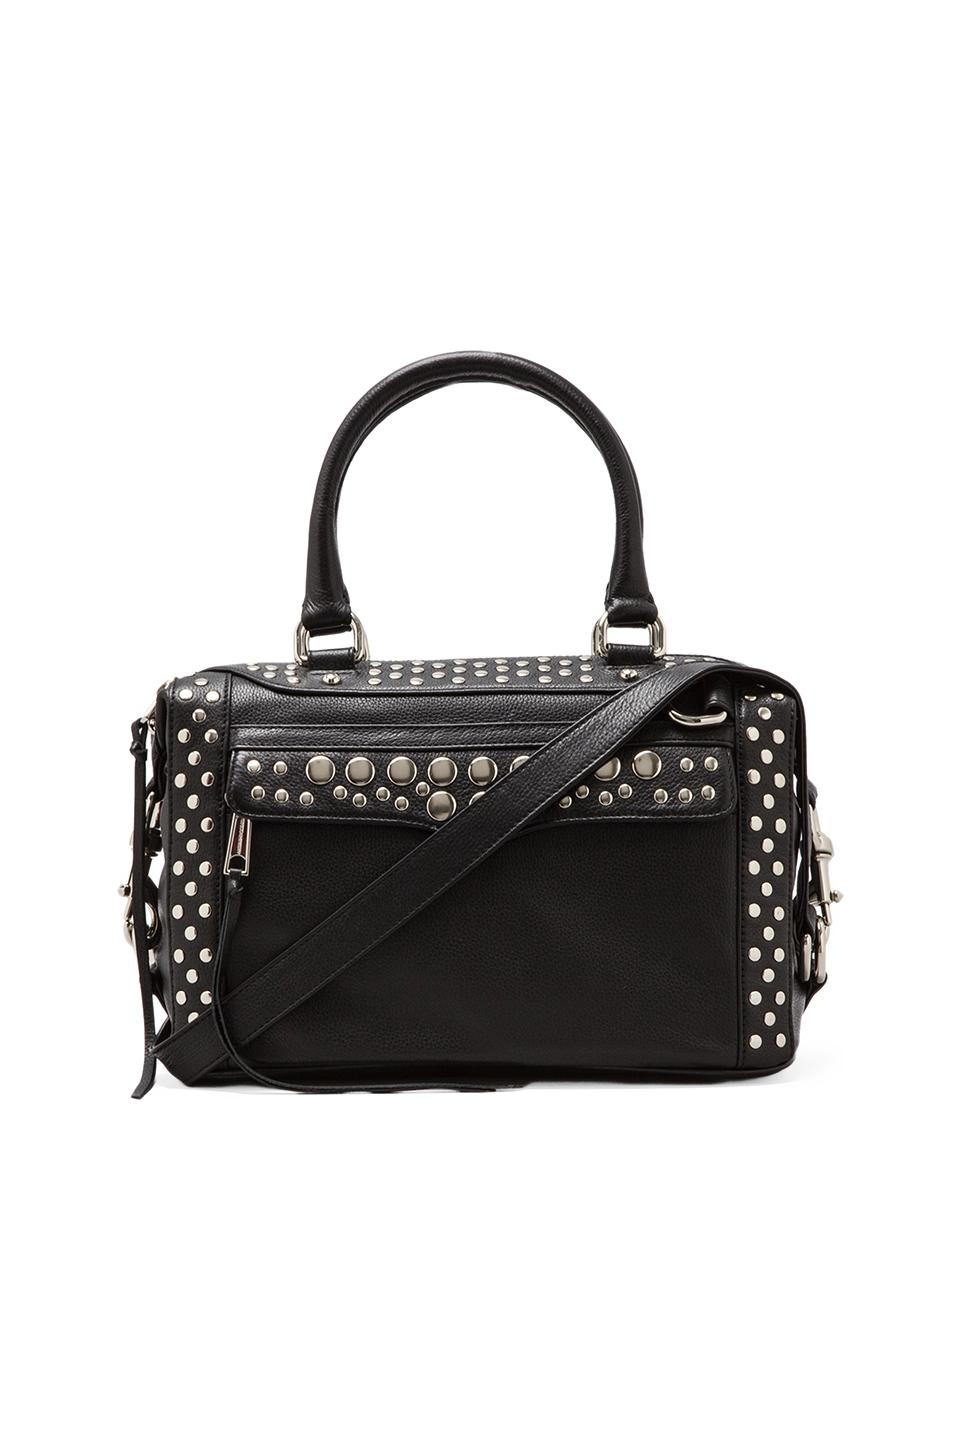 Rebecca Minkoff Studded Mab Mini in Black